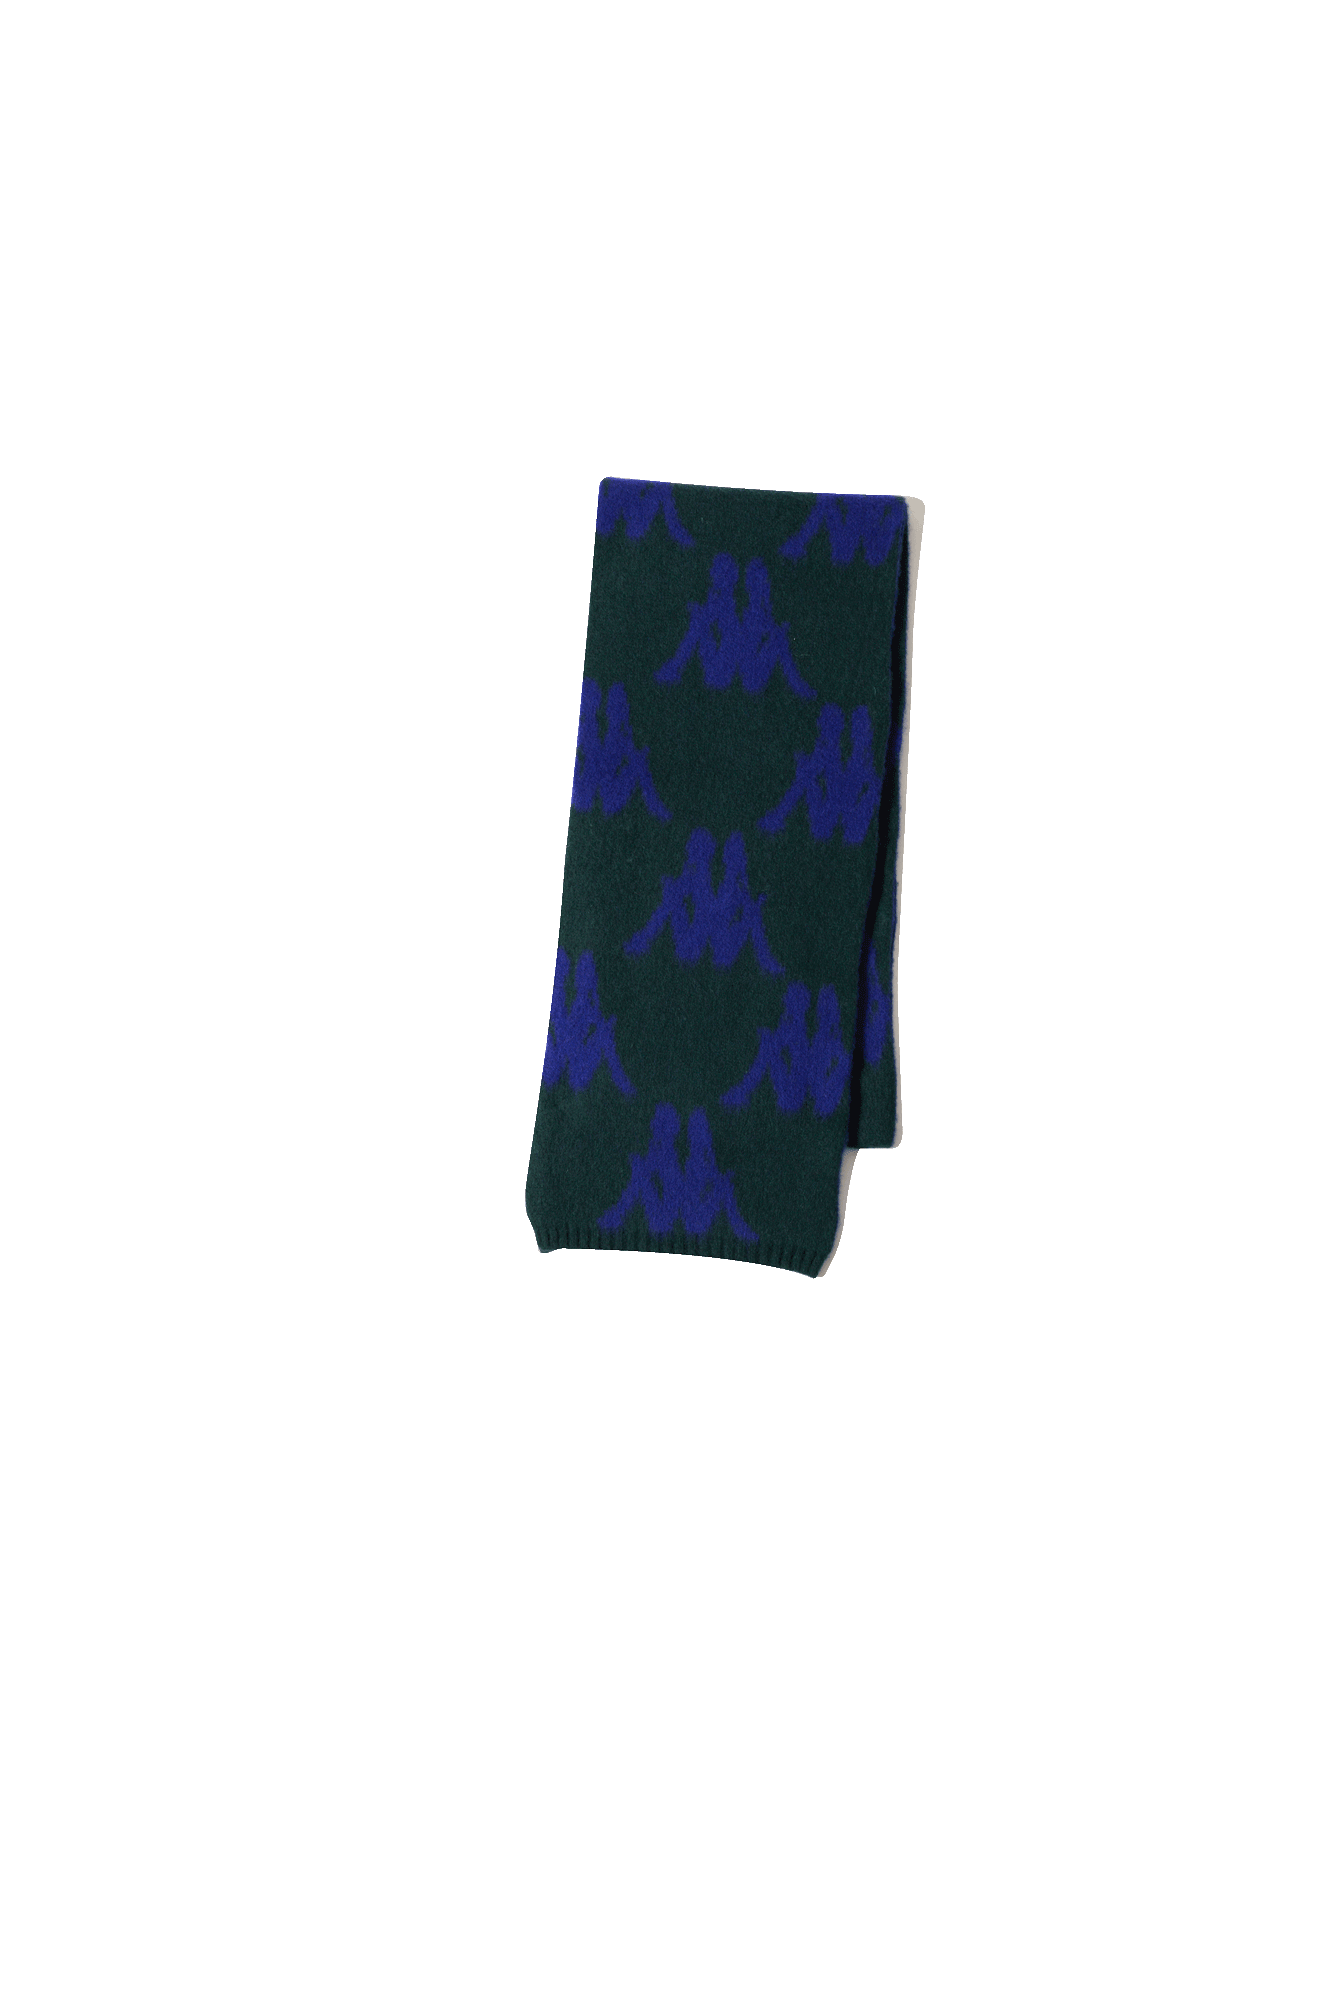 Danilo Paura x Kappa Maglieria Stefan Scarf All Over Verde DPK9001#000#700#OS - One Block Down